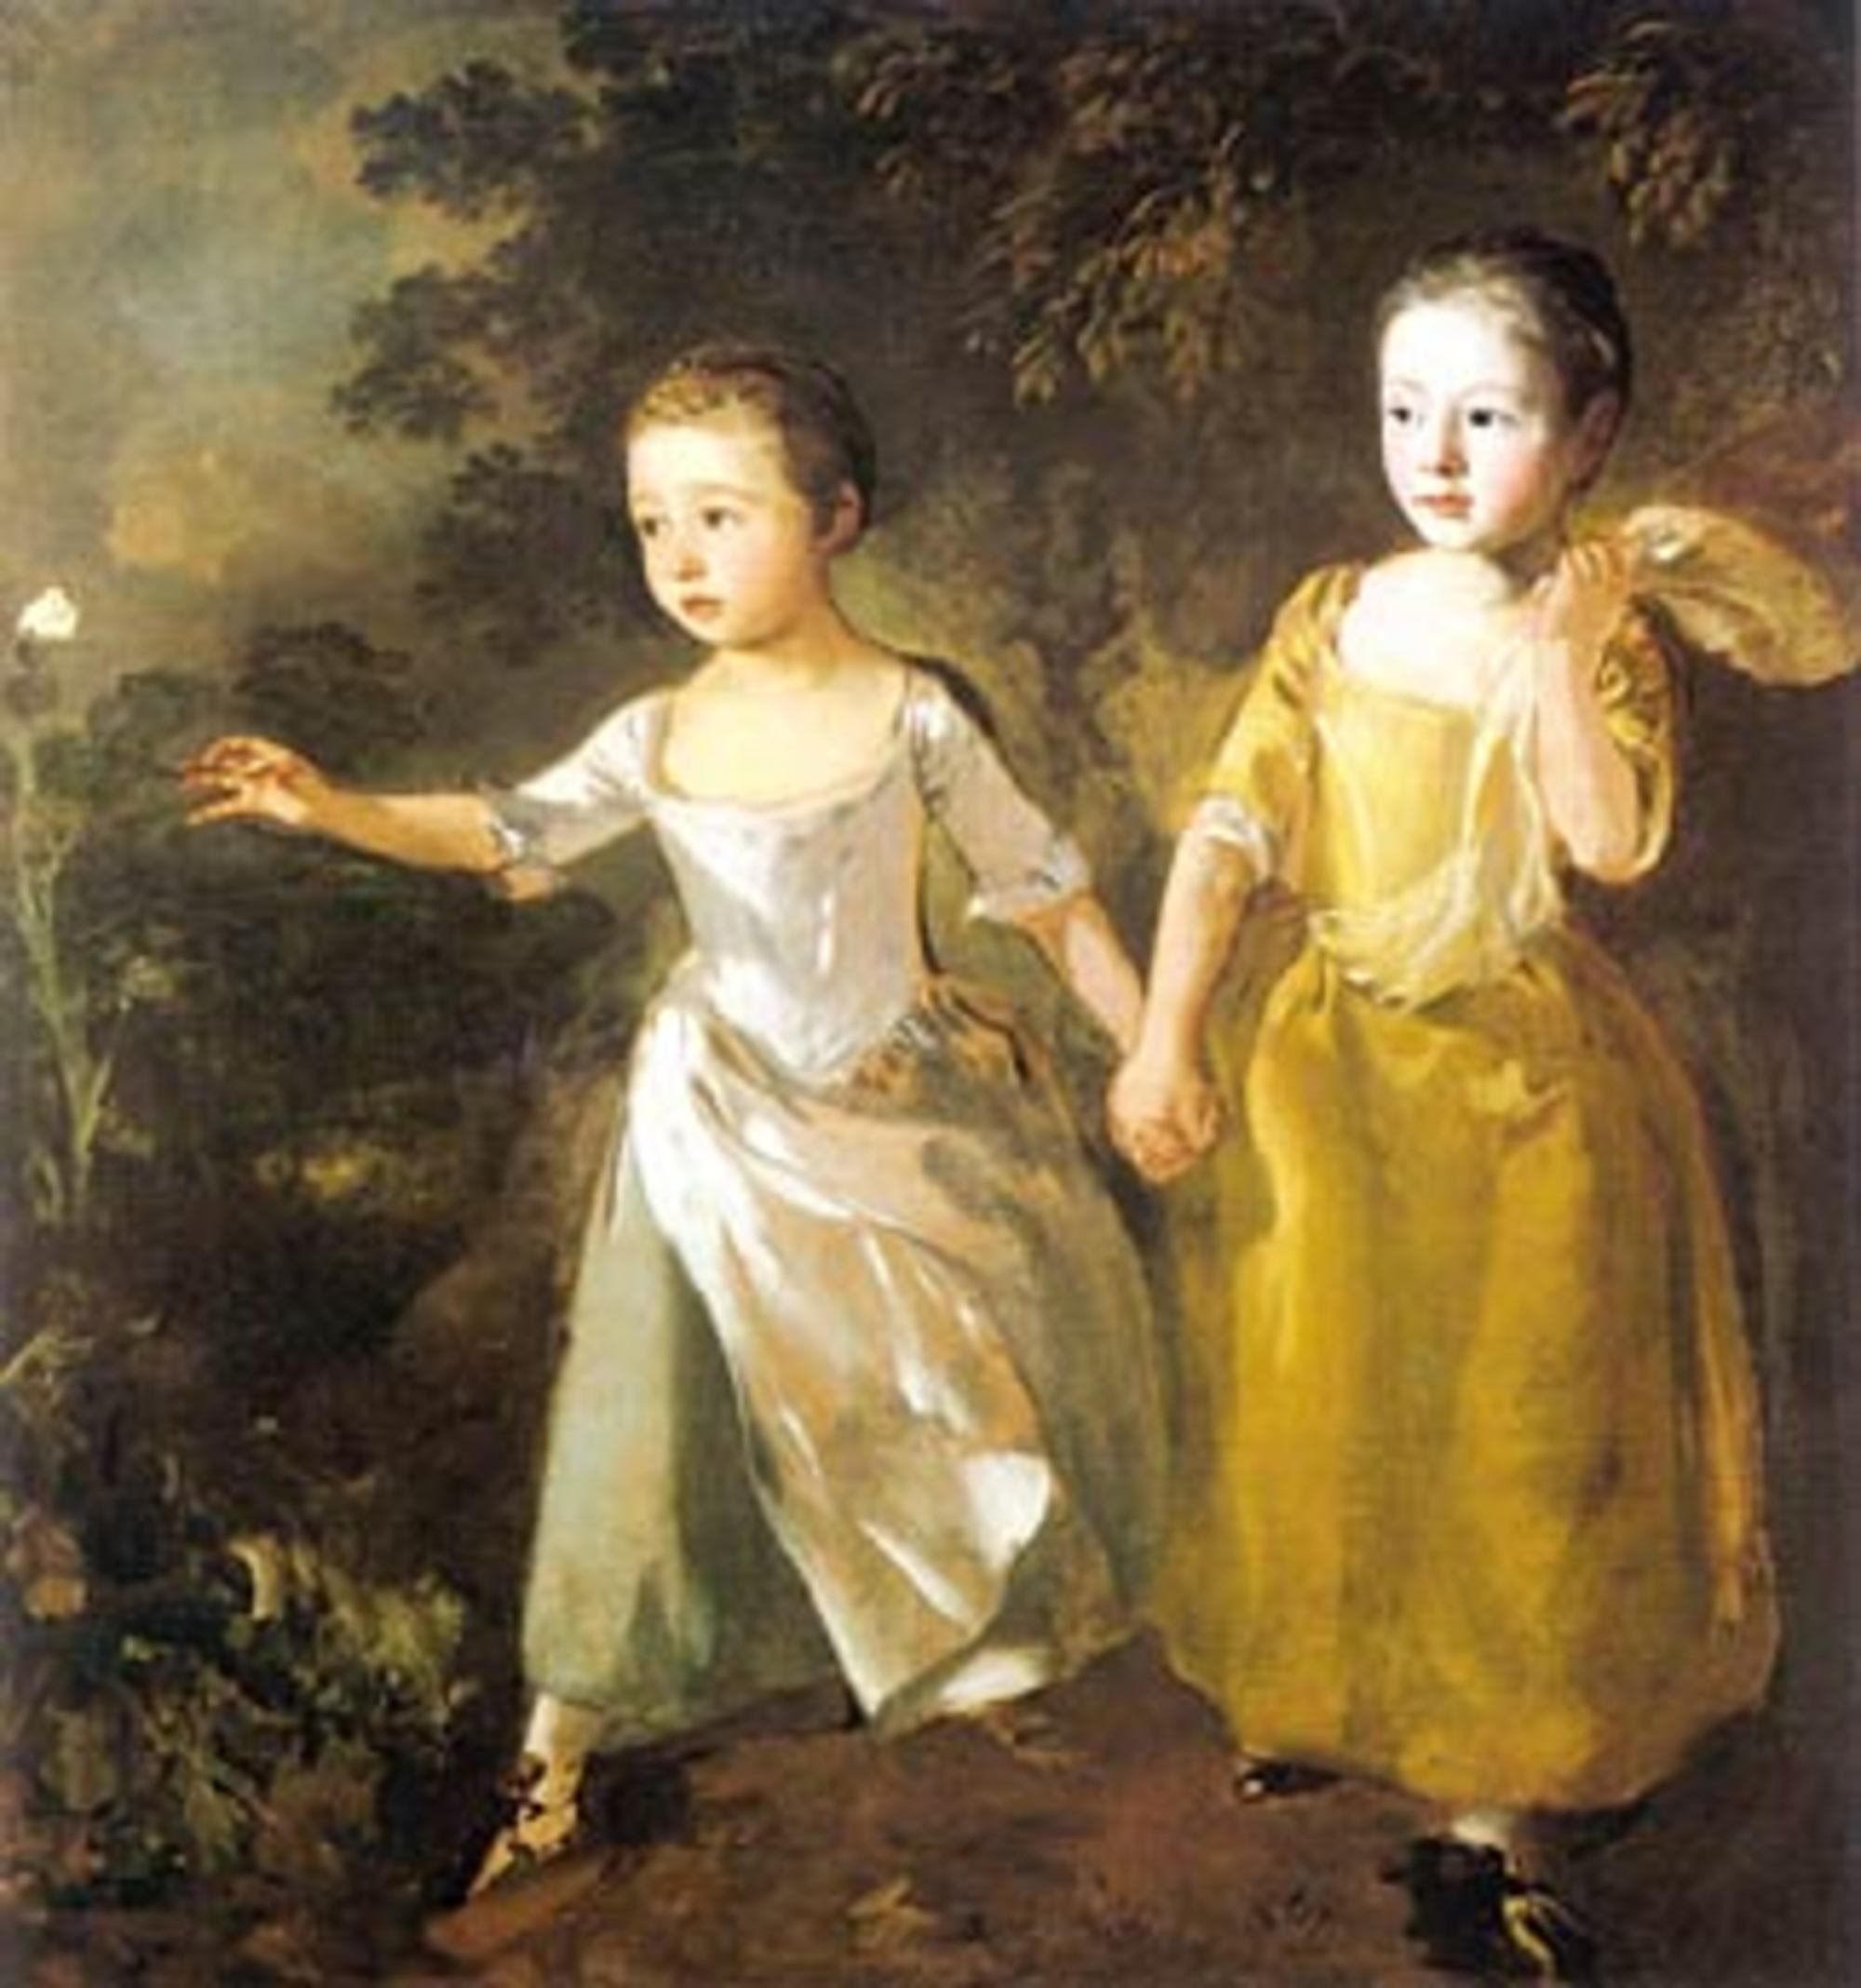 Gainsborough_-_The_Painters_Daughters_Chasing_a_Butterfly.jpg